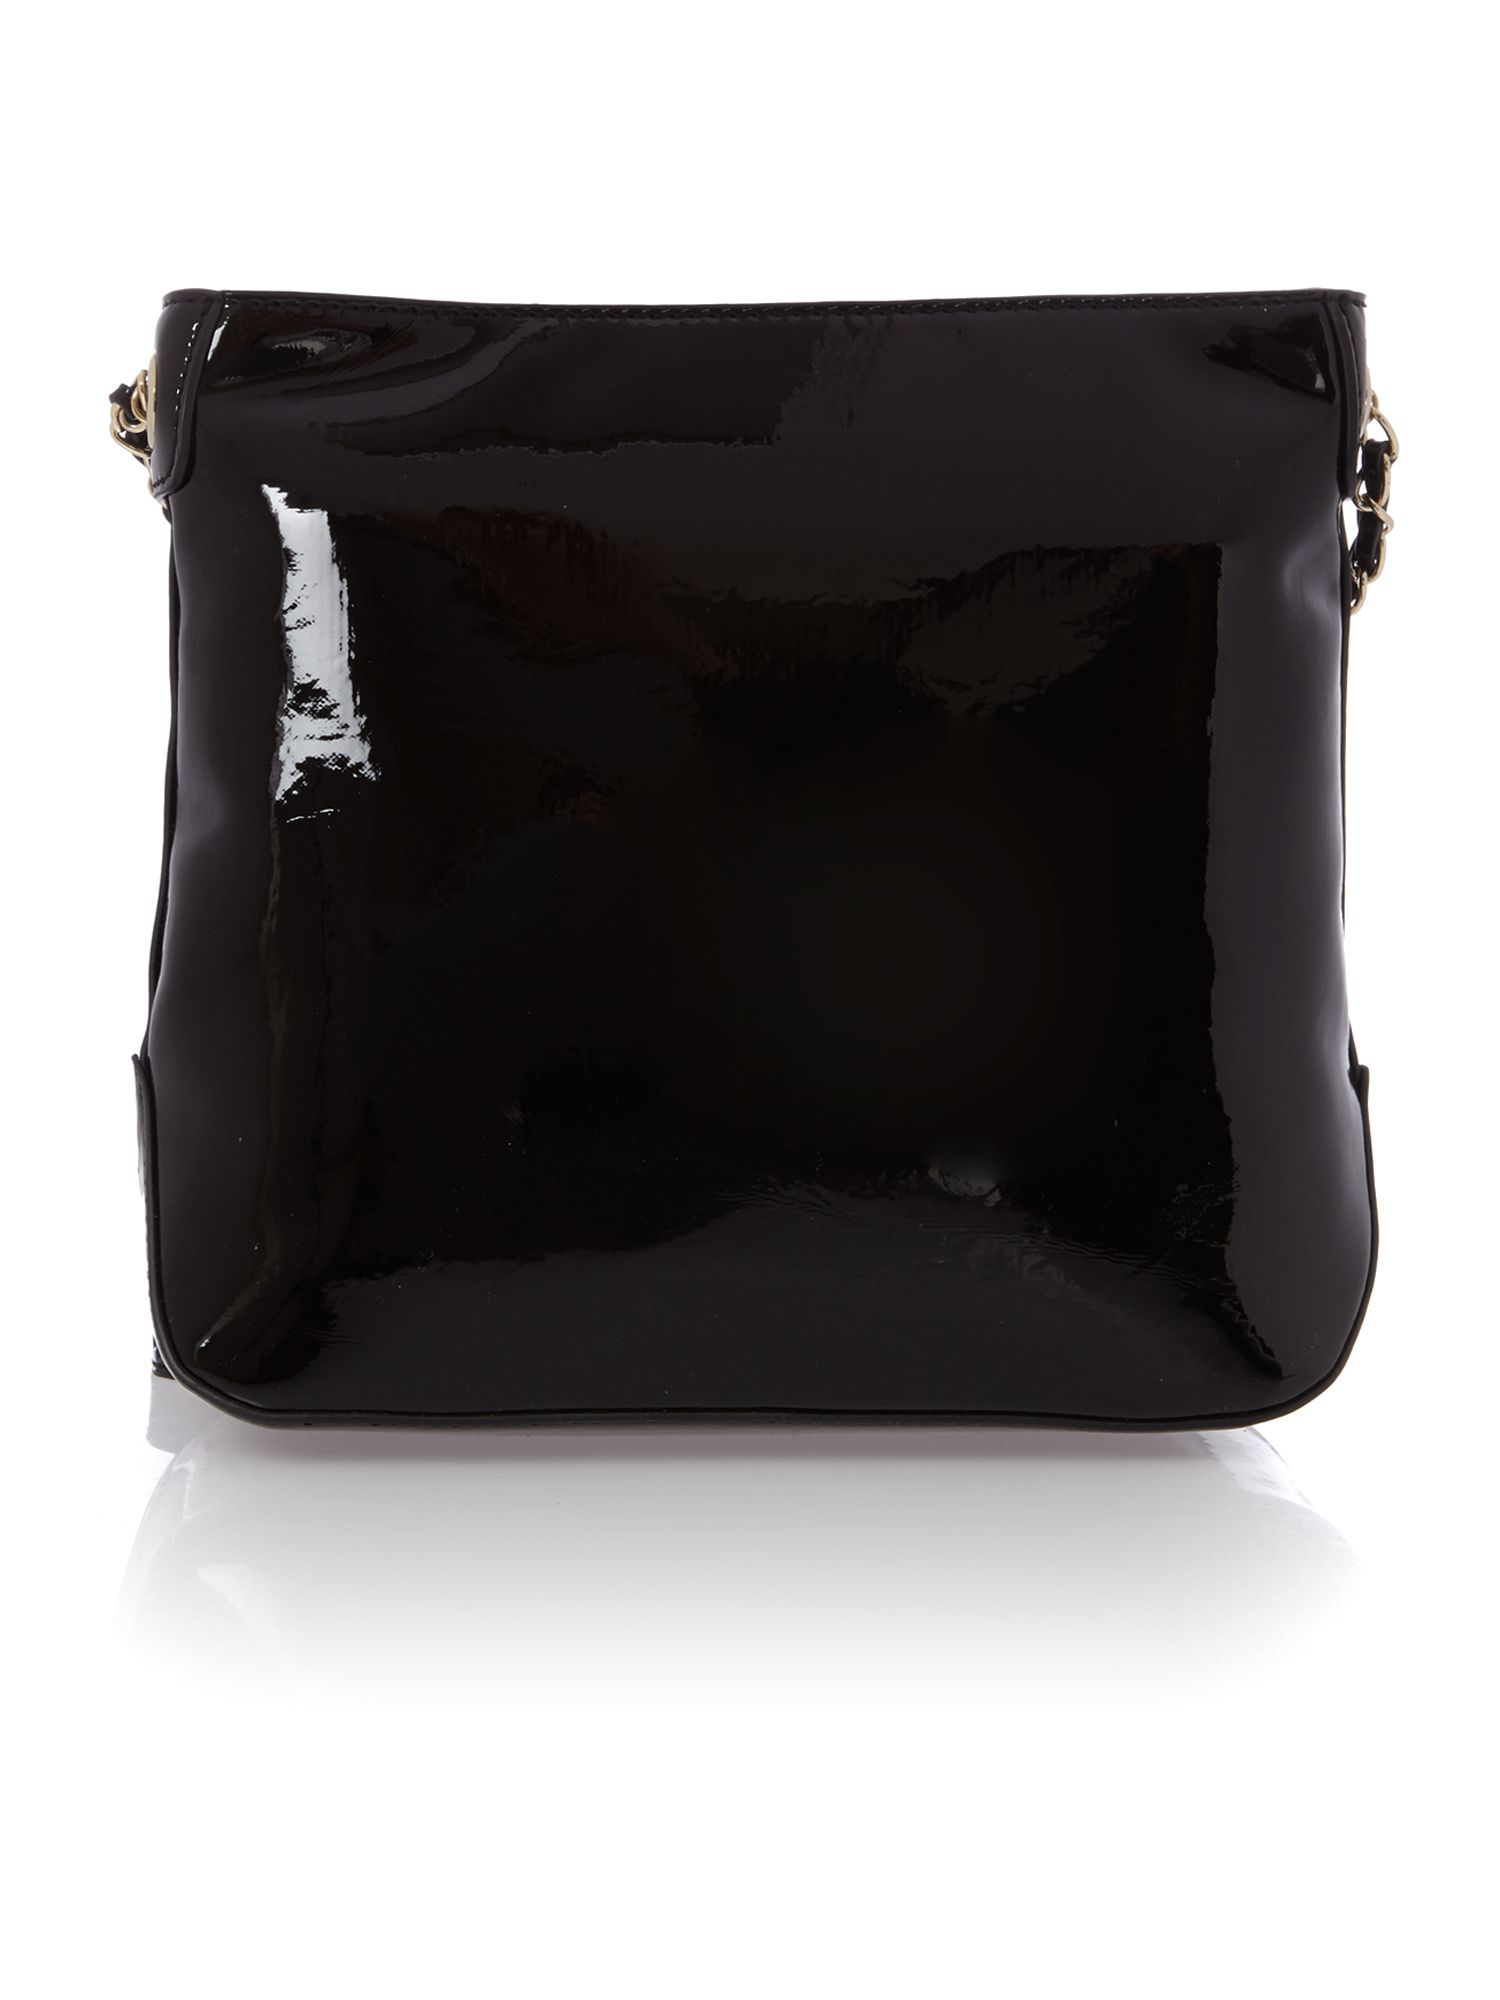 Patent black crossbody bag